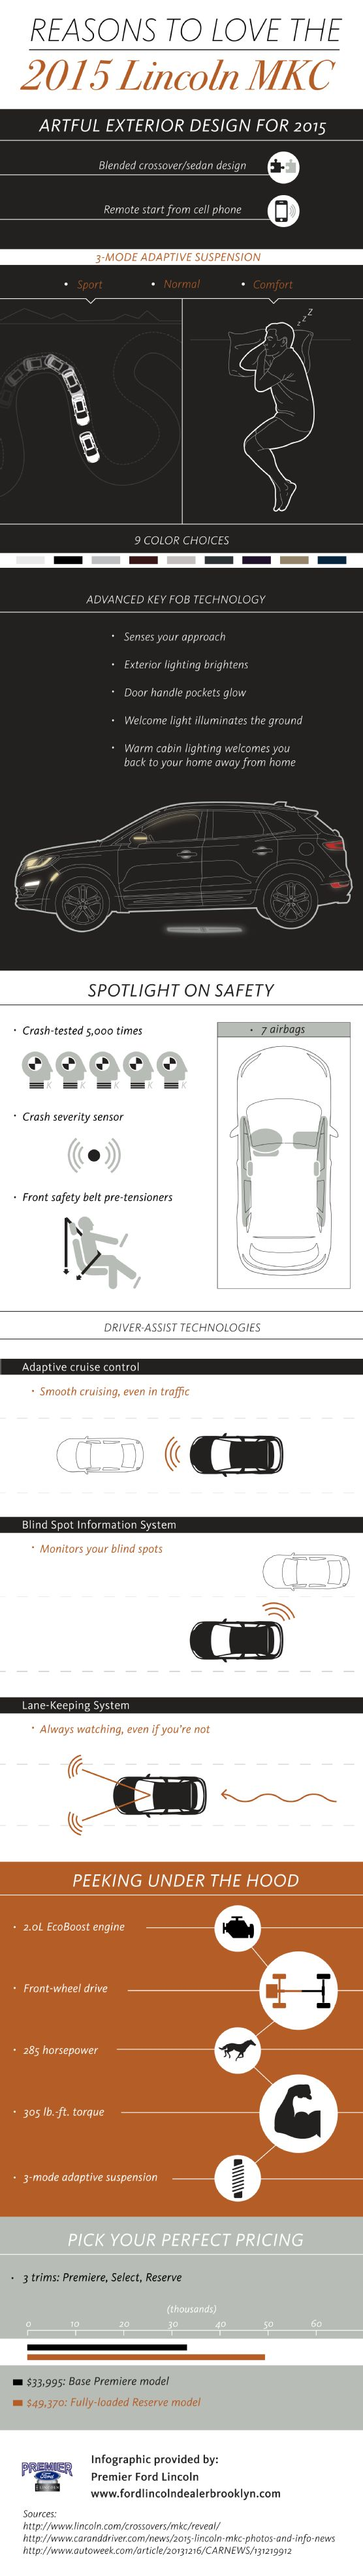 Driving should be enjoyable, not a chore! That is why the 2015 Lincoln MKC features a number of driver-assist technologies that create a safer and more enjoyable time on the road. Learn about them by clicking over to this infographic from a Lincoln dealership in Brooklyn.